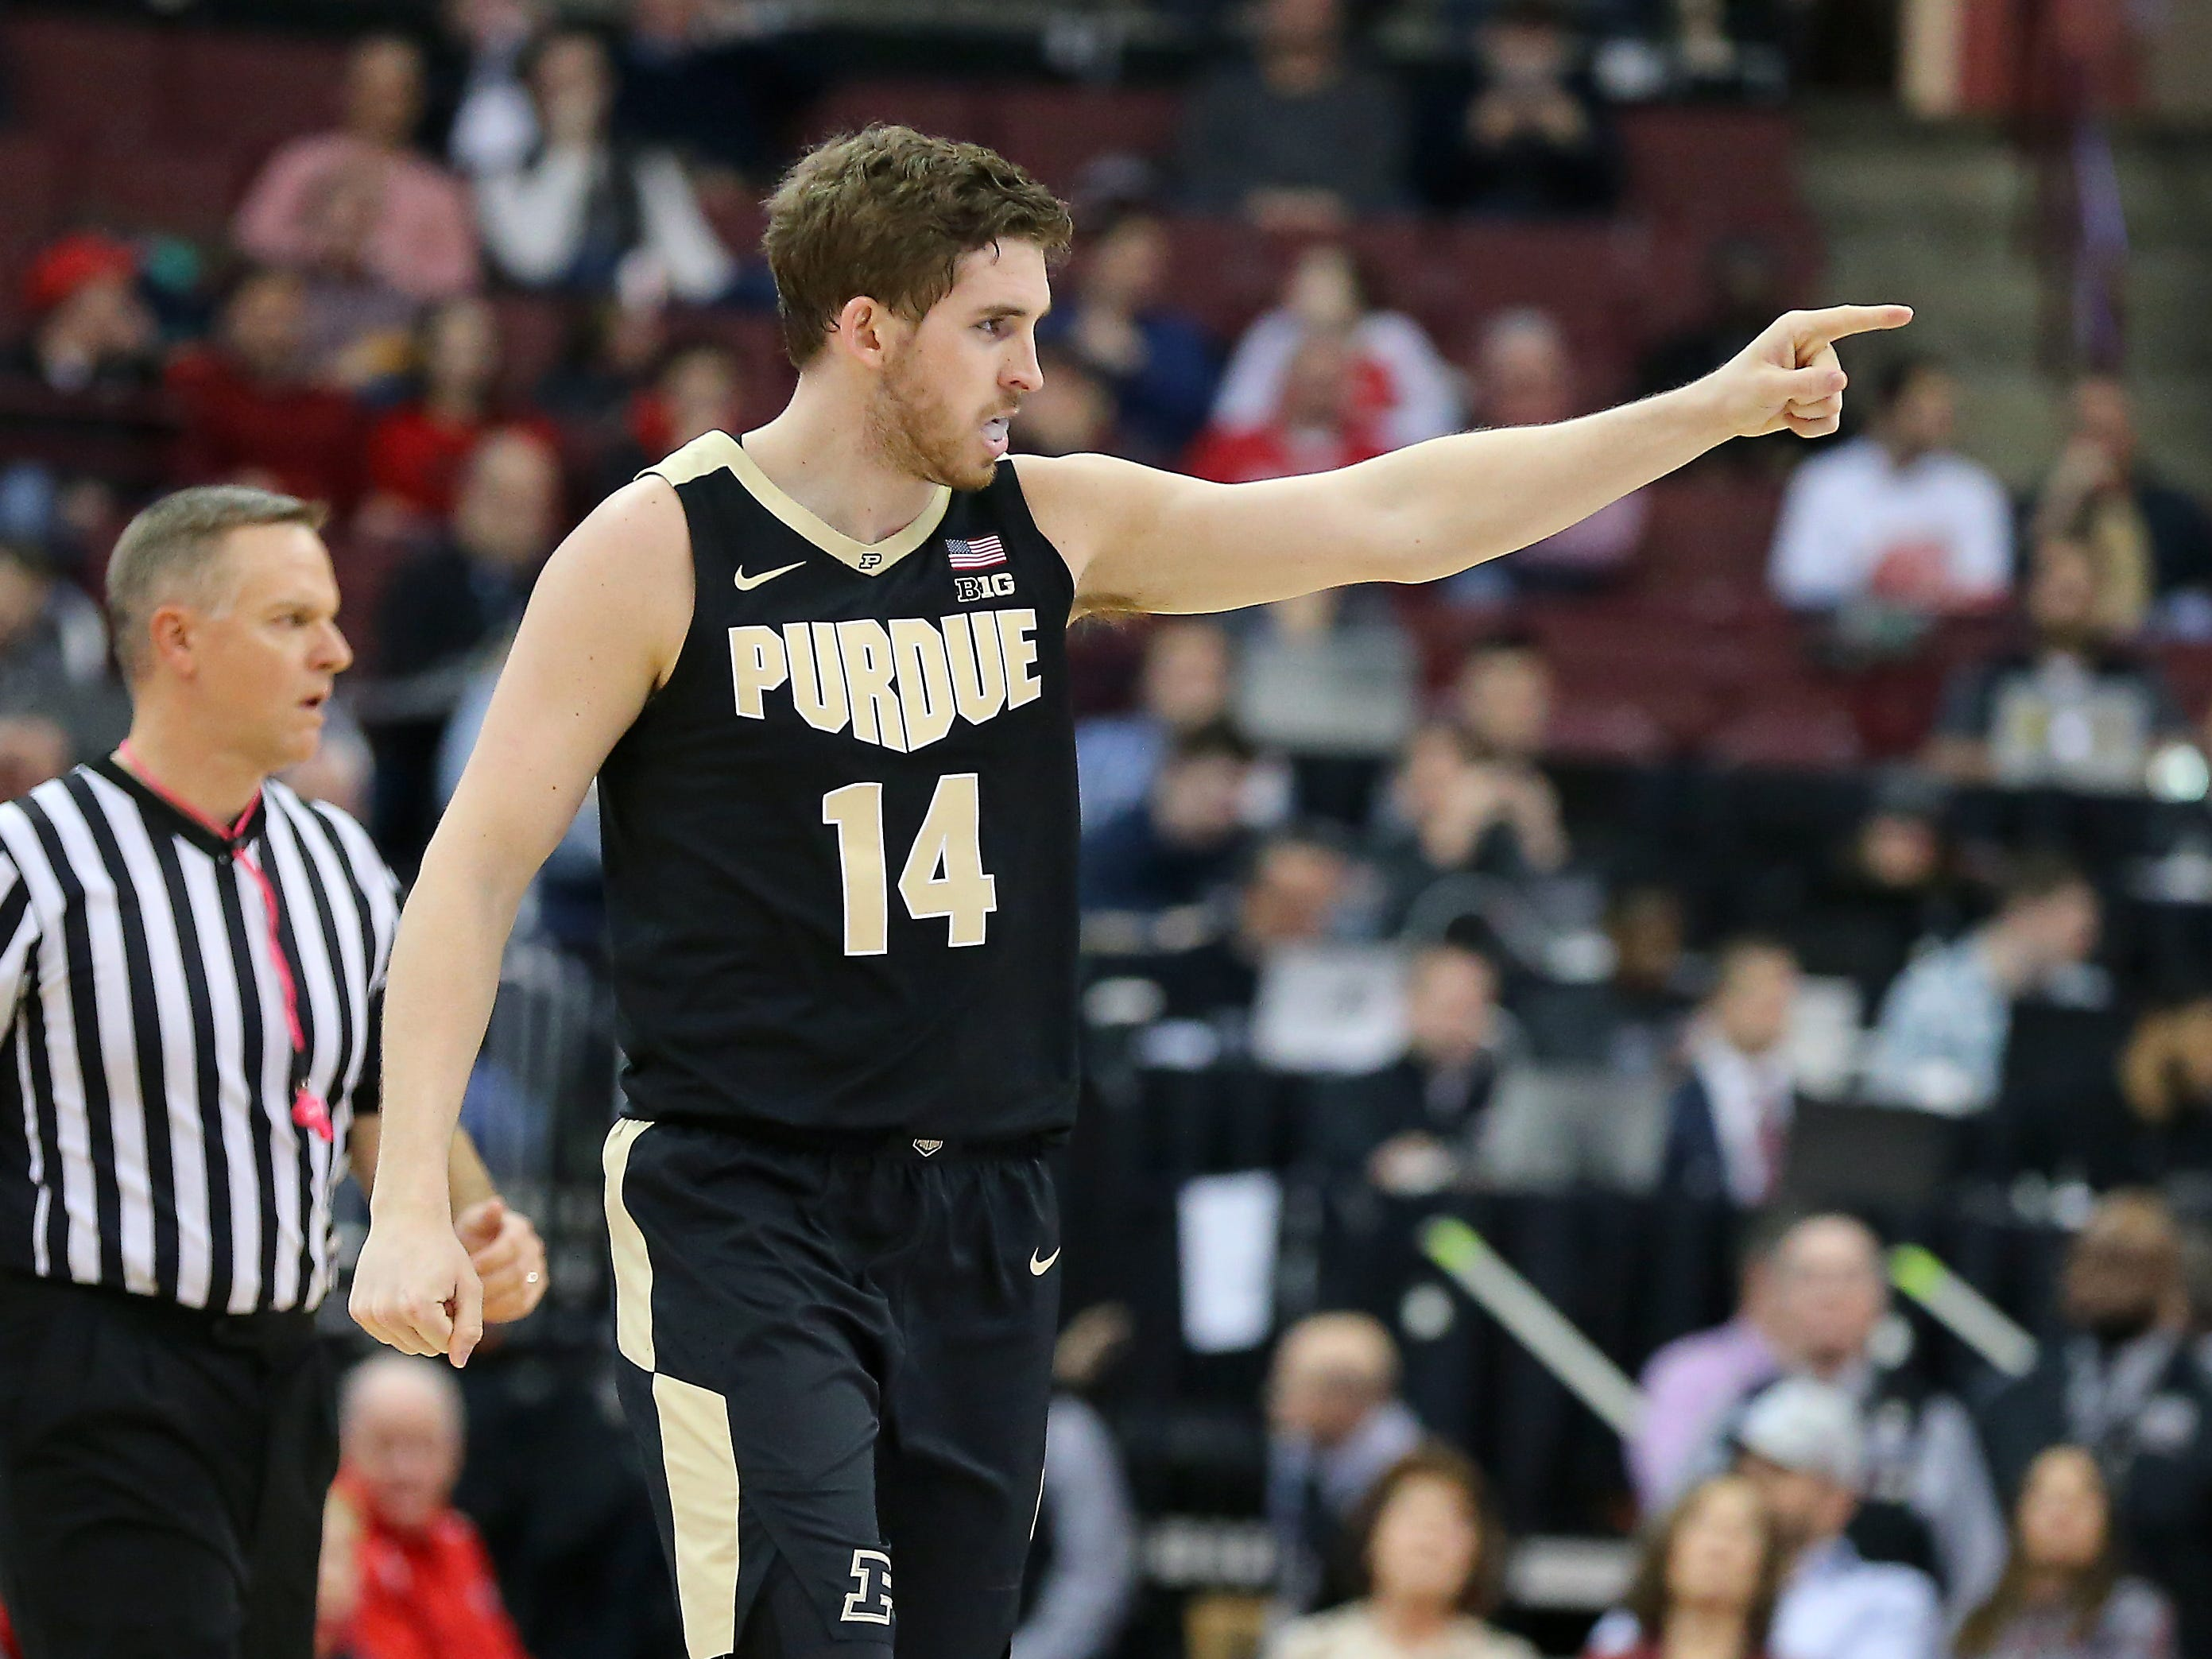 Jan 23, 2019; Columbus, OH, USA; Purdue Boilermakers guard Ryan Cline (14) celebrates after making a three point basket during the first half against the Ohio State Buckeyes at Value City Arena. Mandatory Credit: Joe Maiorana-USA TODAY Sports